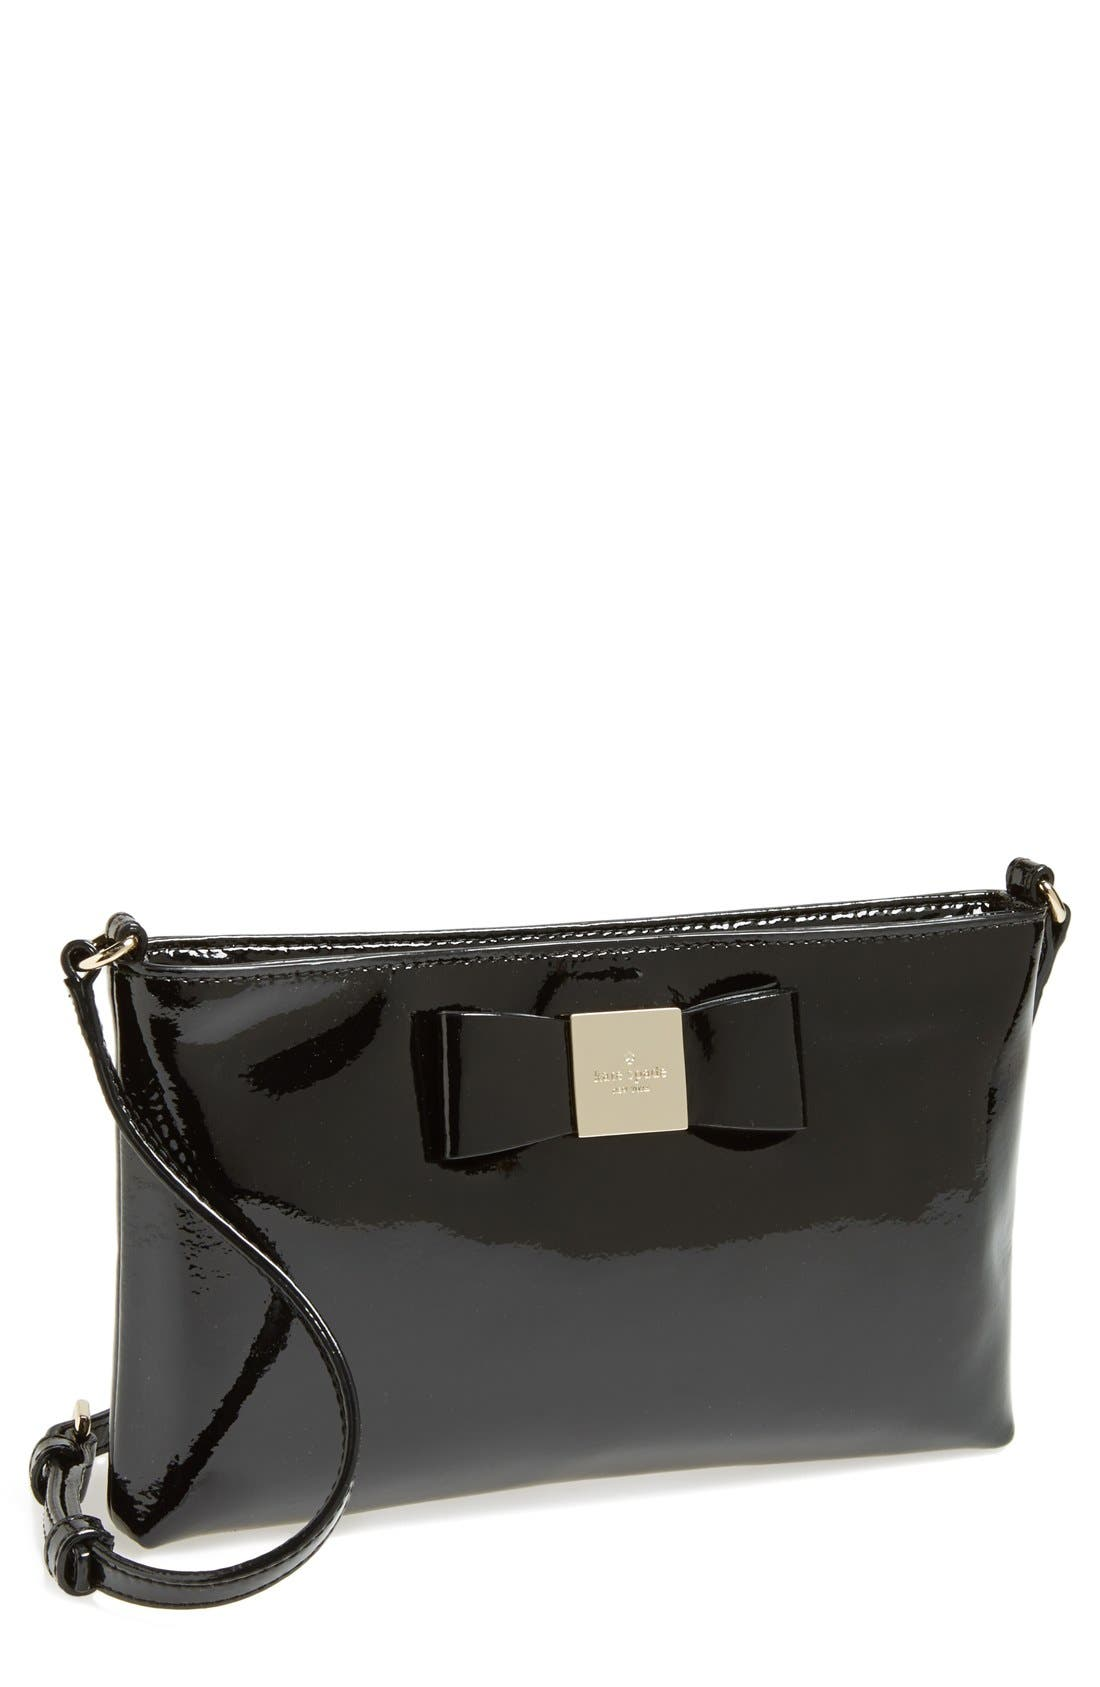 Alternate Image 1 Selected - kate spade new york 'maree' patent leather crossbody bag